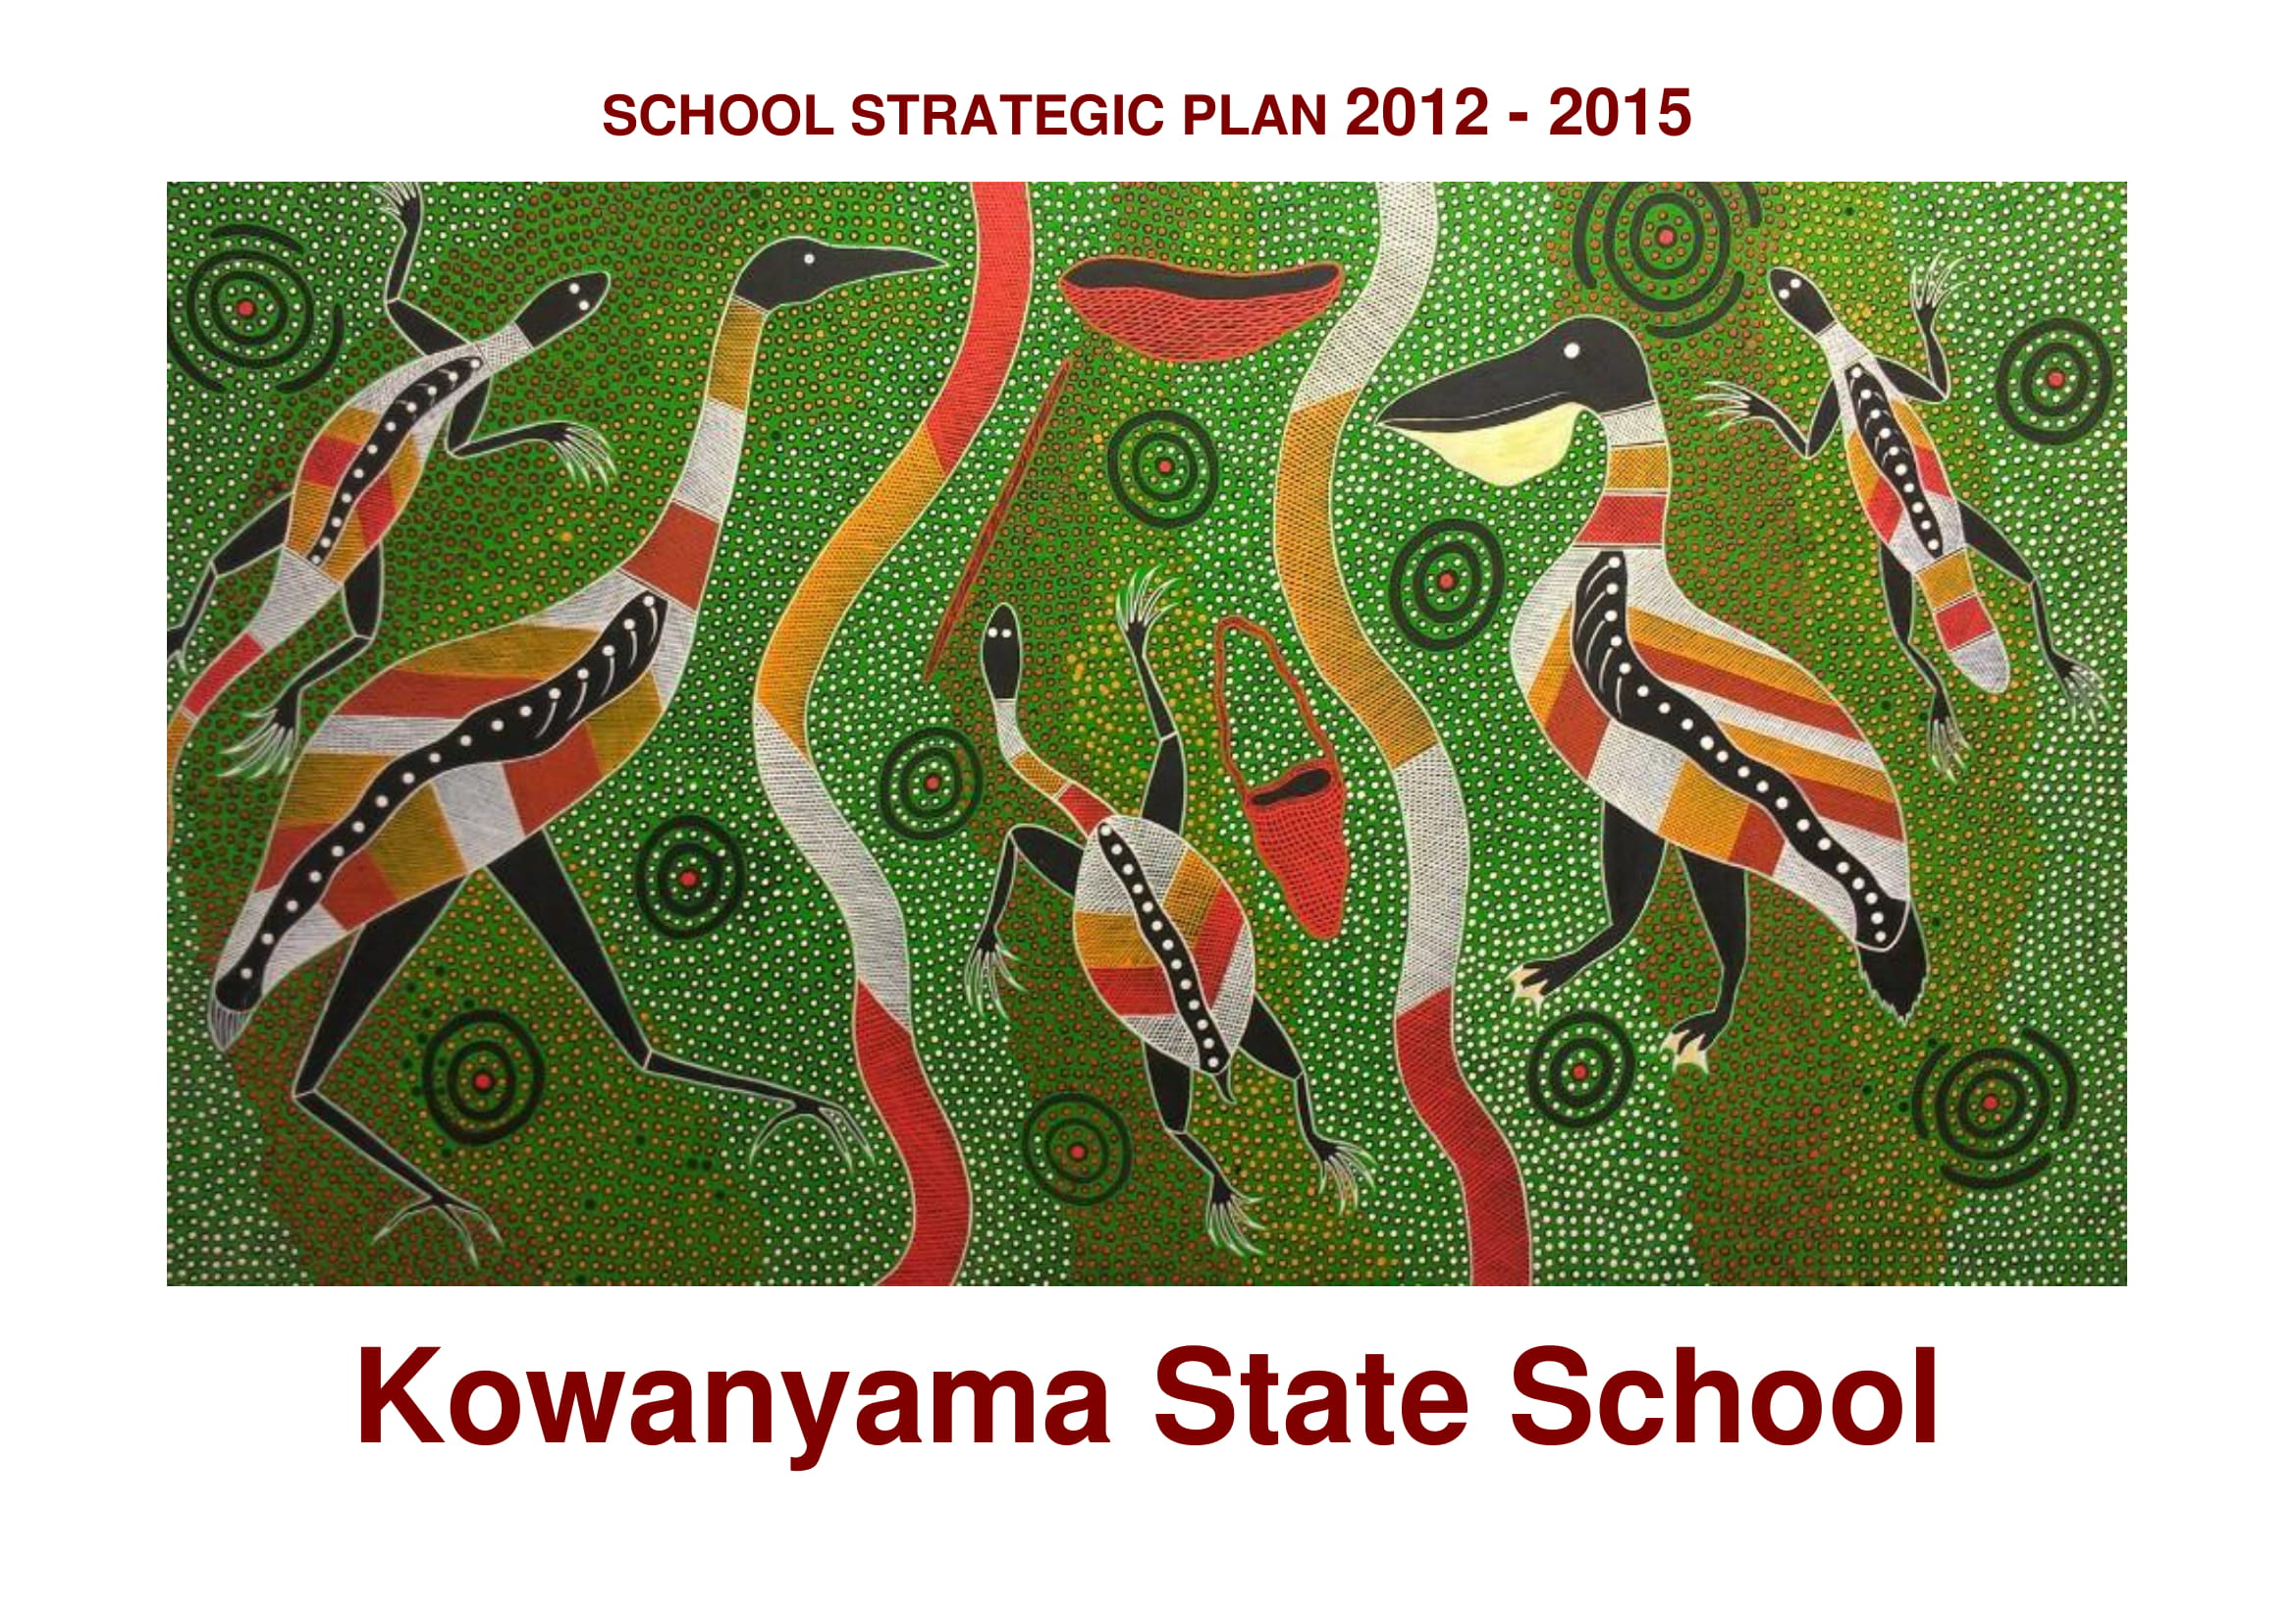 detailed school strategic plan example 01